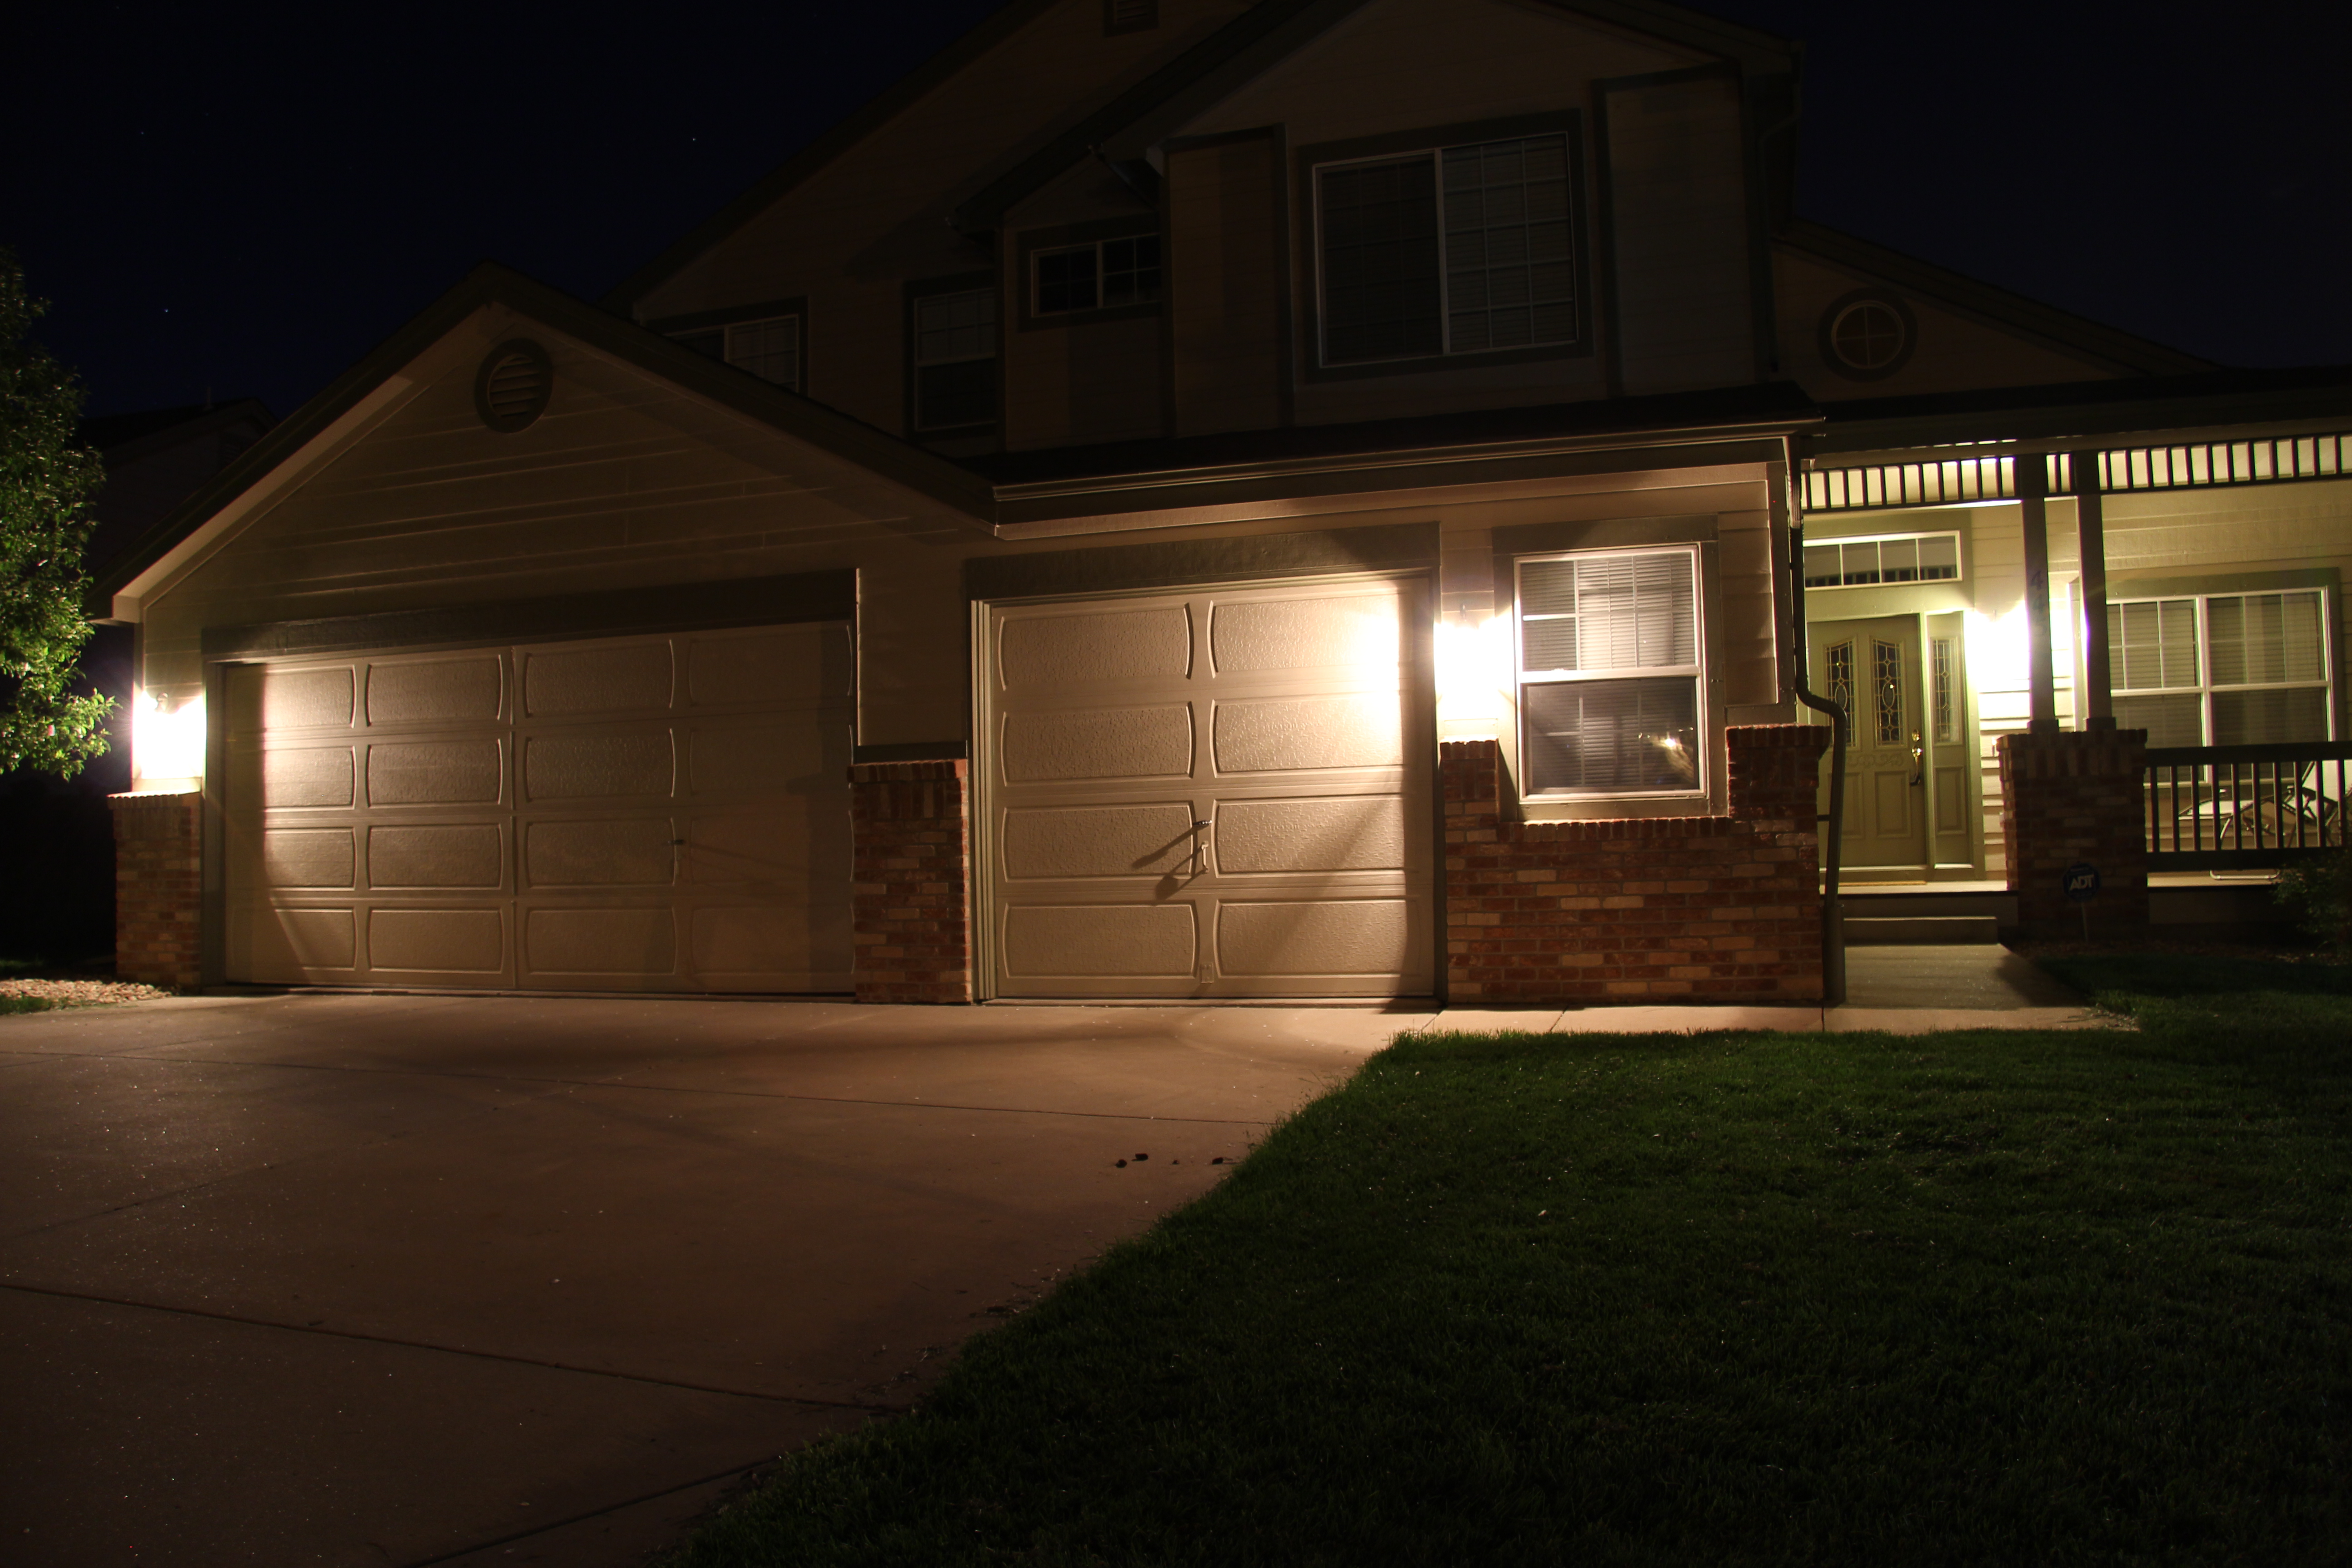 preserving the night sky off trail traveldenver home with normal light bulbs installed